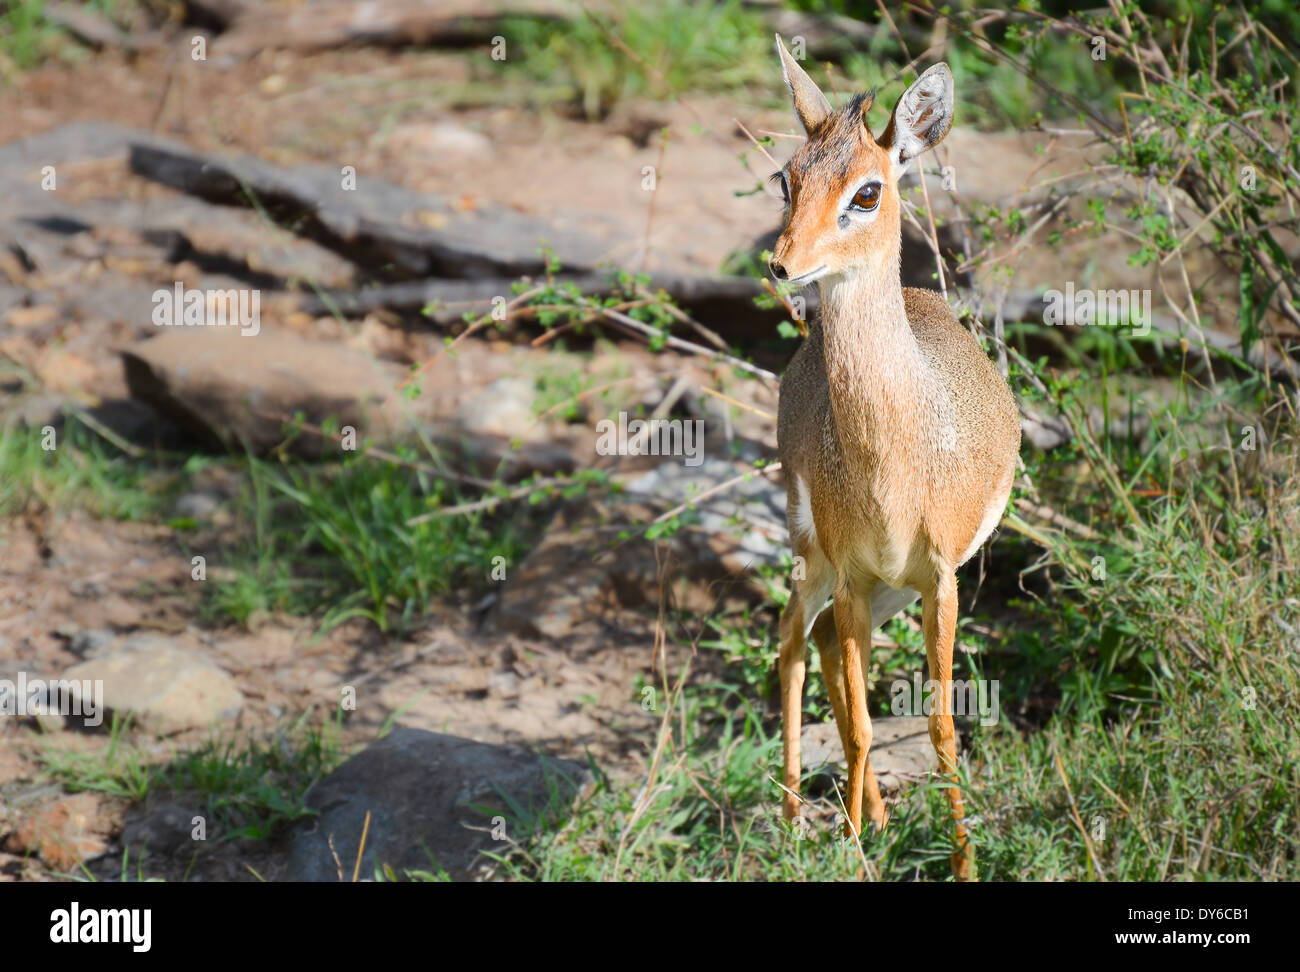 Dik-dik tentatively looks on in the Masai Mara - Stock Image